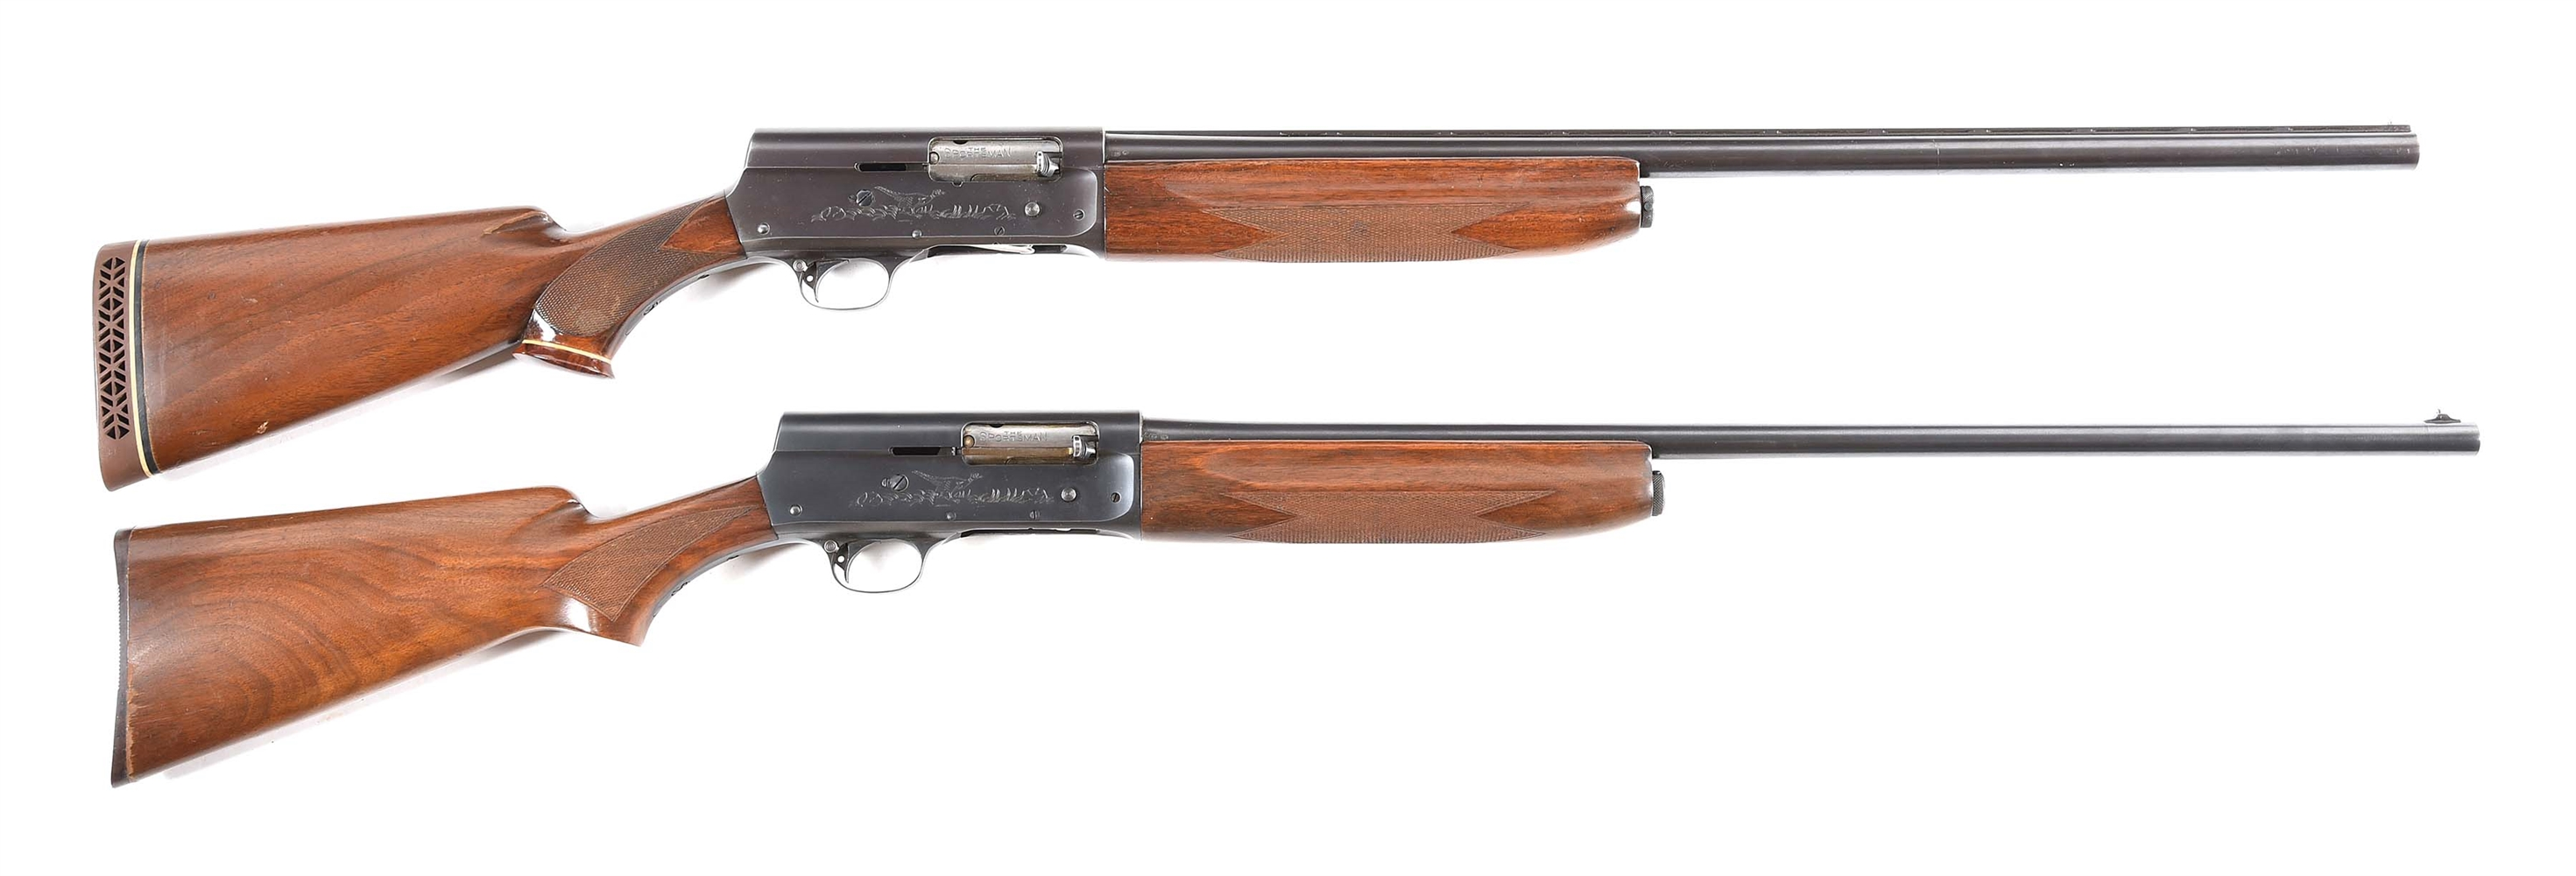 (C) LOT OF TWO REMINGTON MODEL 11 SEMI AUTOMATIC SHOTGUNS: INCLUDING A SCARCE 20 GAUGE MODEL 11